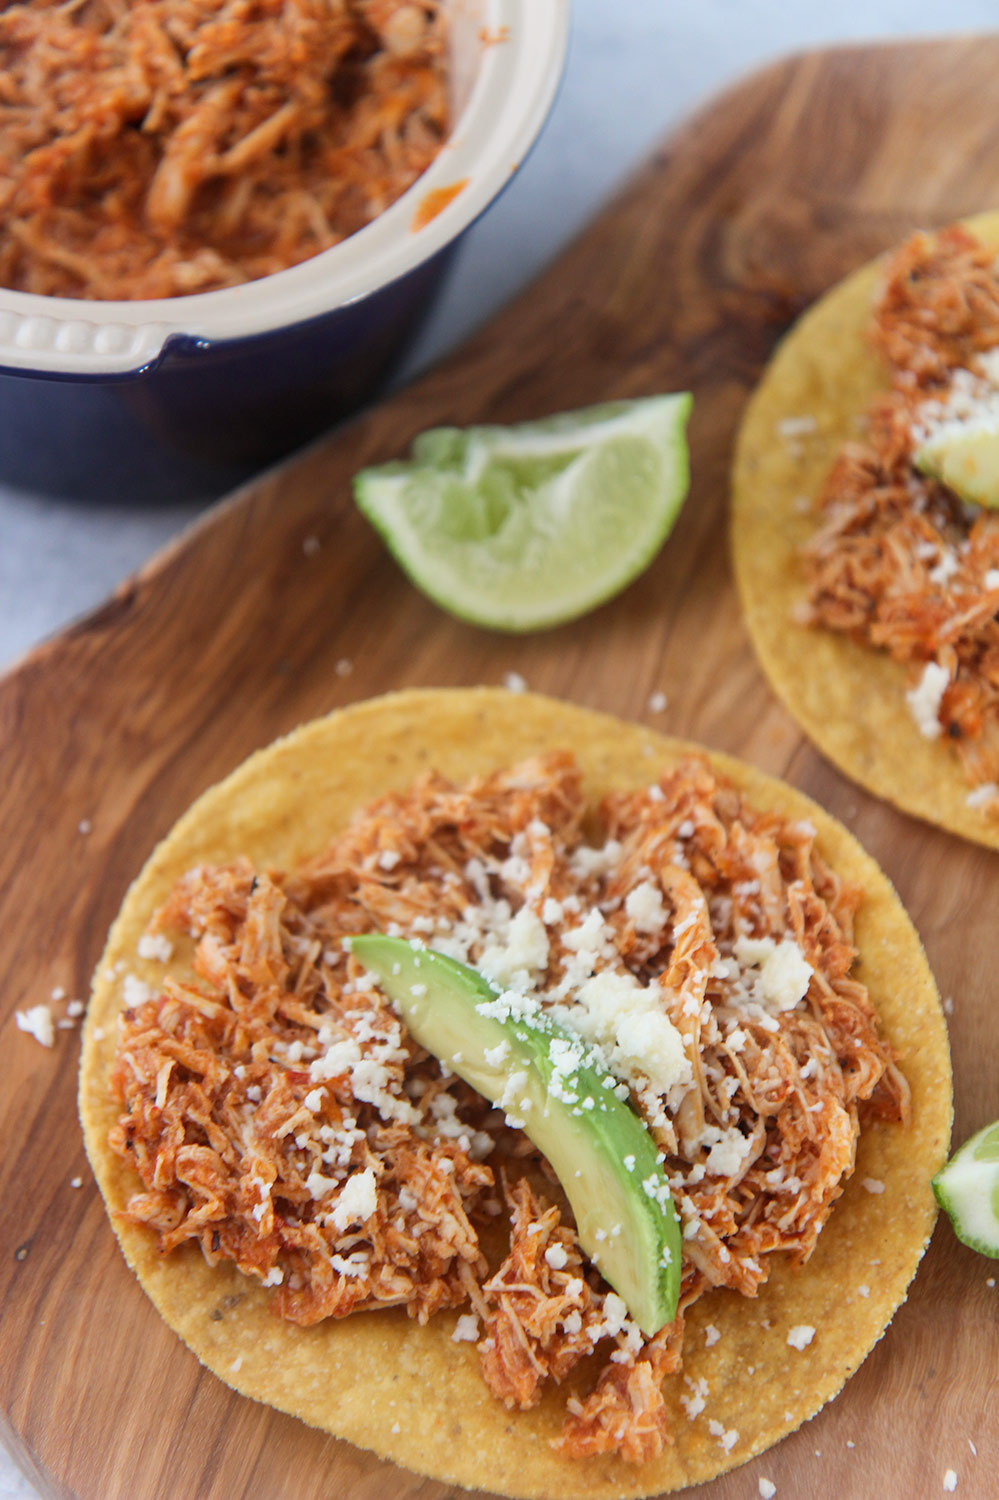 chicken tinga tostadas on a wooden board with lime wedges on the side.